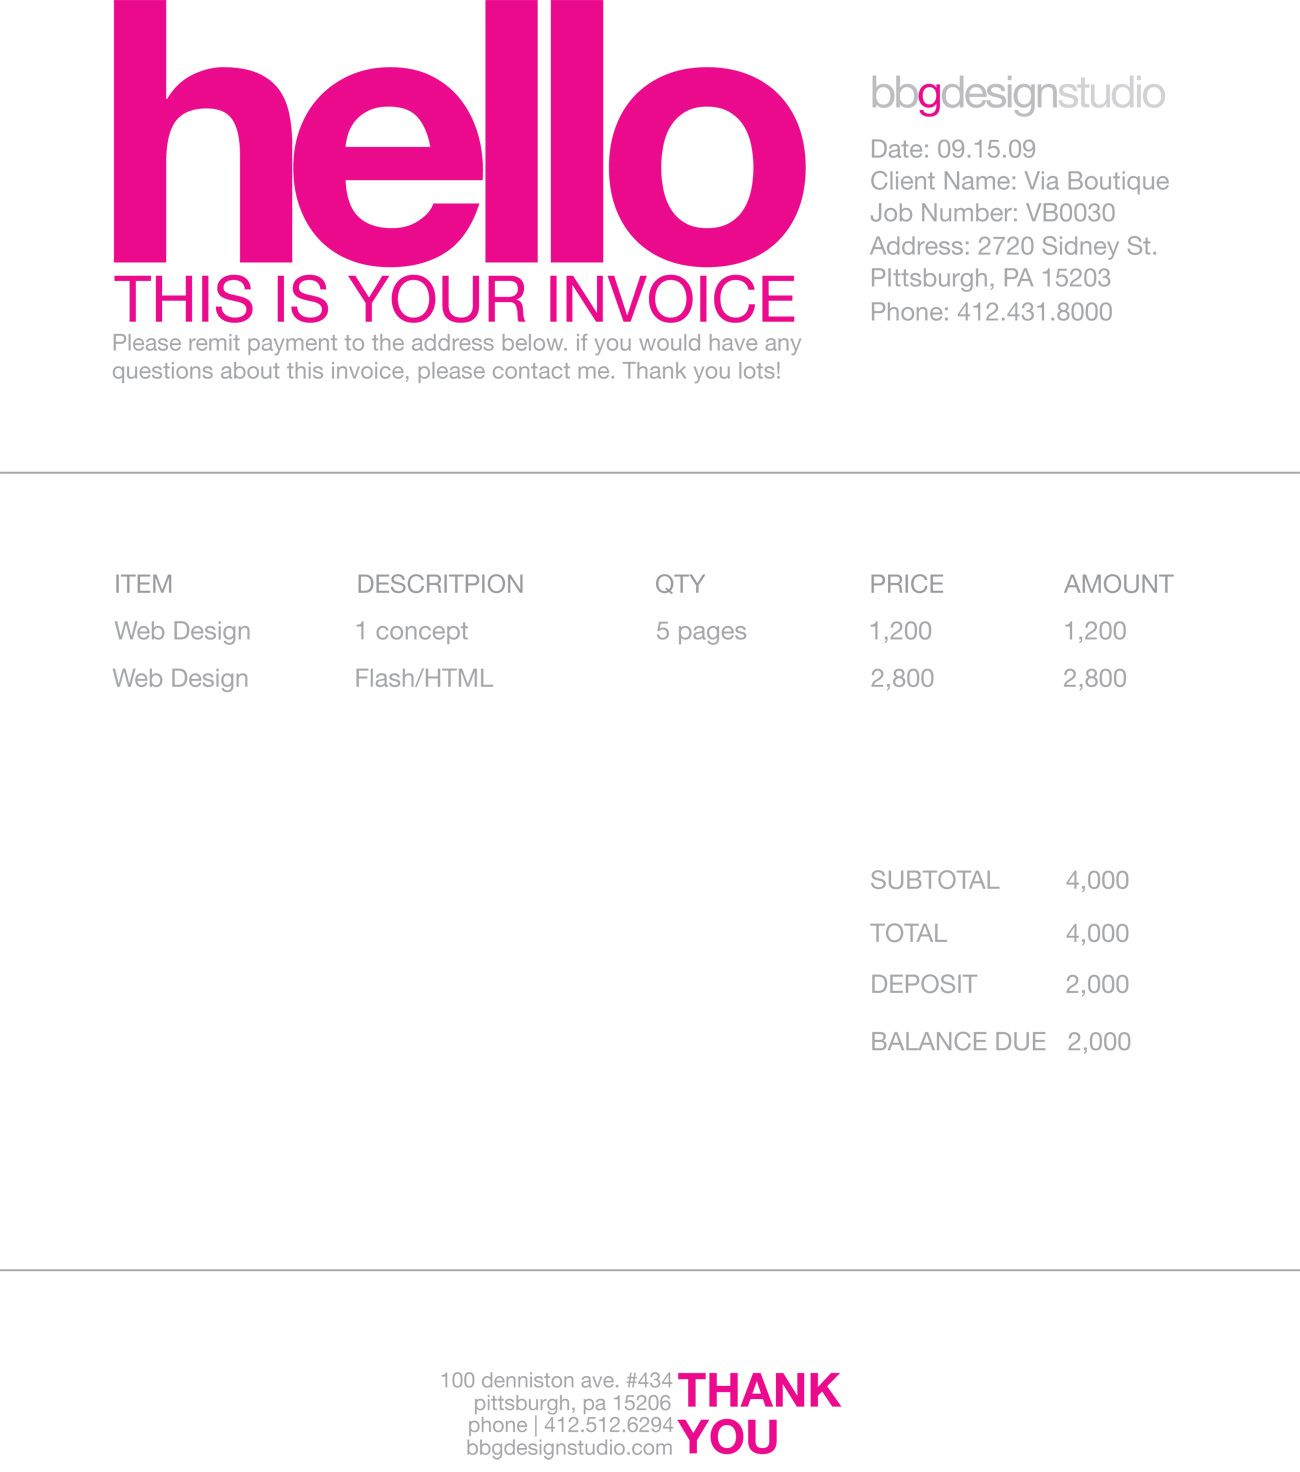 Soulfulpowerus  Terrific  Images About Invoice Design On Pinterest With Goodlooking Billing Invoice Form Besides Free Editable Invoice Template Pdf Furthermore Word Template For Invoice With Archaic Invoicing Service Also Invoice What Is In Addition How To Format An Invoice And Pdf Invoice Generator As Well As Proforma Invoice Meaning Additionally Invoice Free Online From Pinterestcom With Soulfulpowerus  Goodlooking  Images About Invoice Design On Pinterest With Archaic Billing Invoice Form Besides Free Editable Invoice Template Pdf Furthermore Word Template For Invoice And Terrific Invoicing Service Also Invoice What Is In Addition How To Format An Invoice From Pinterestcom